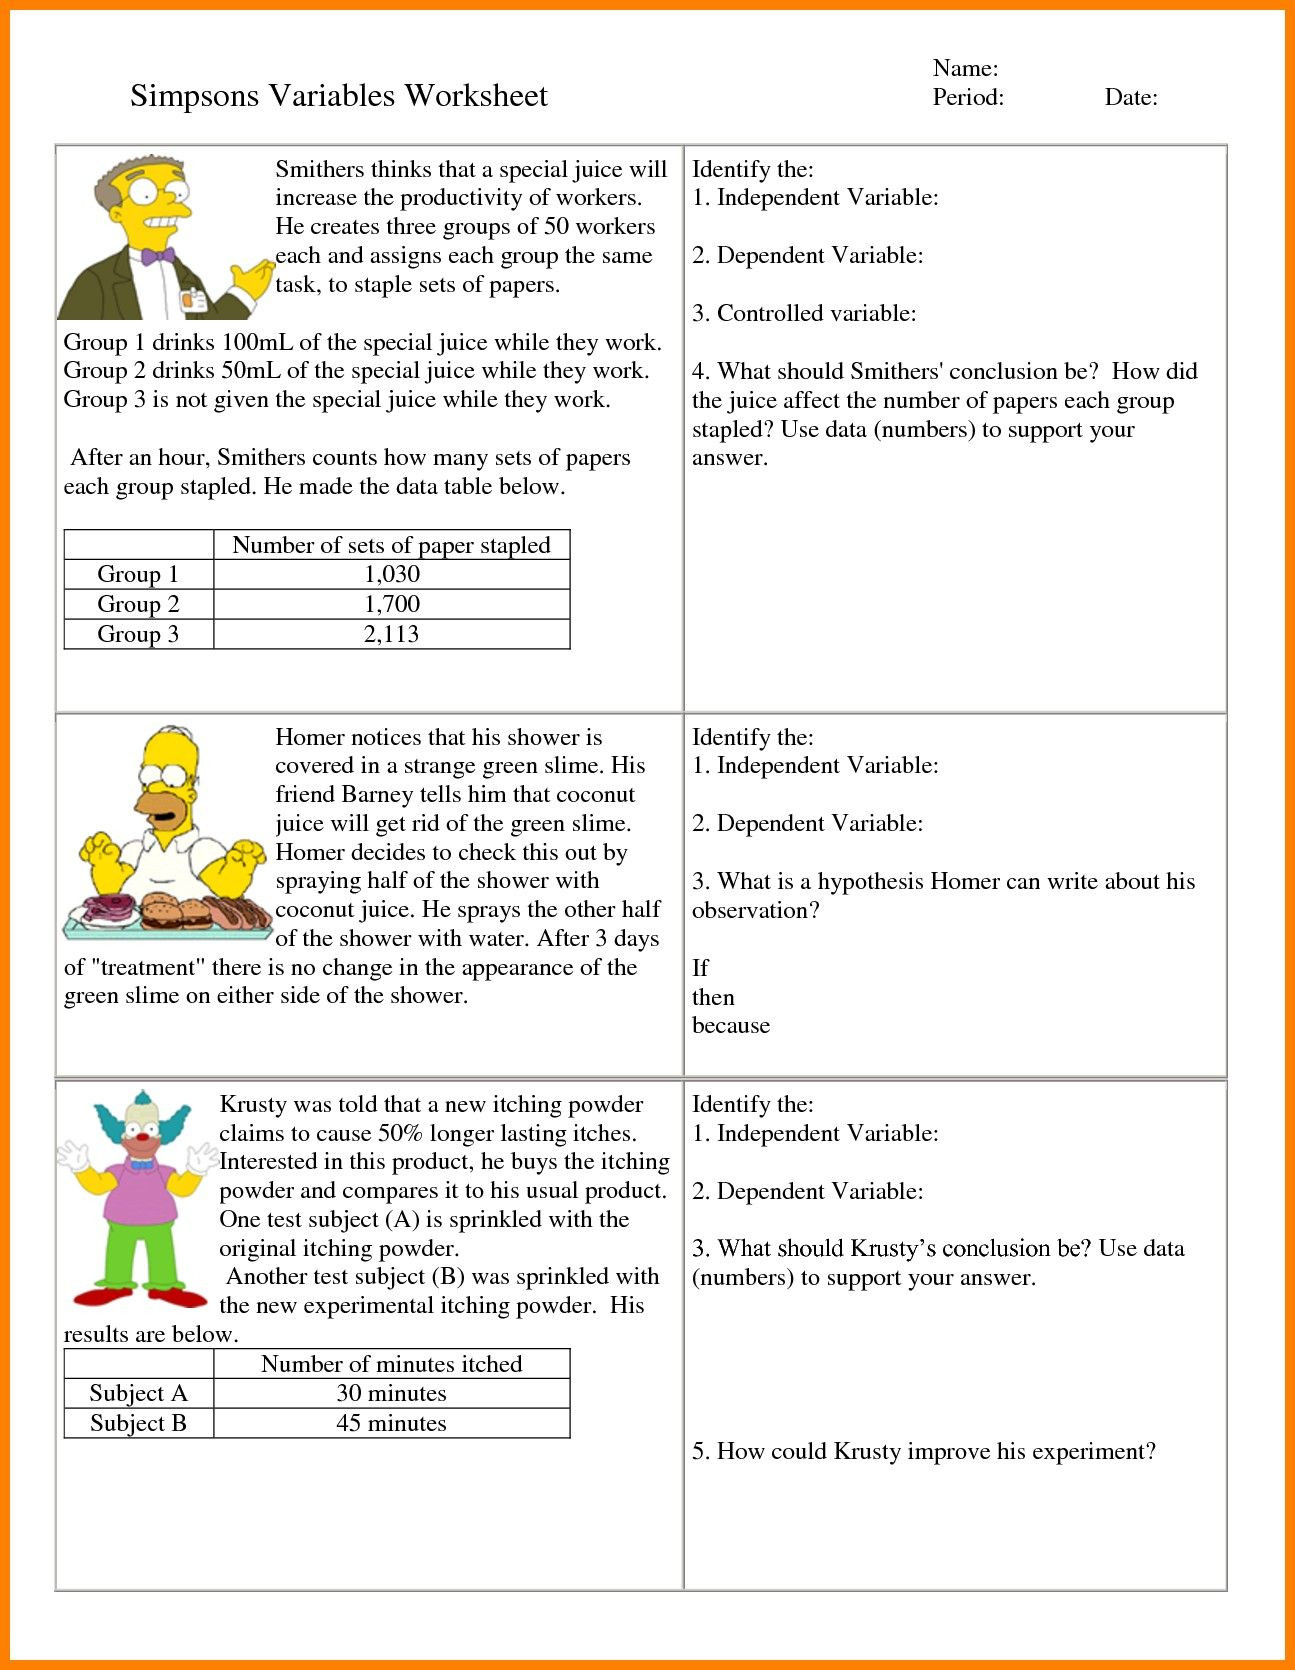 Personification Worksheets for Middle School 6th Grade Hypothesis Worksheet Refrence 7 Independent and